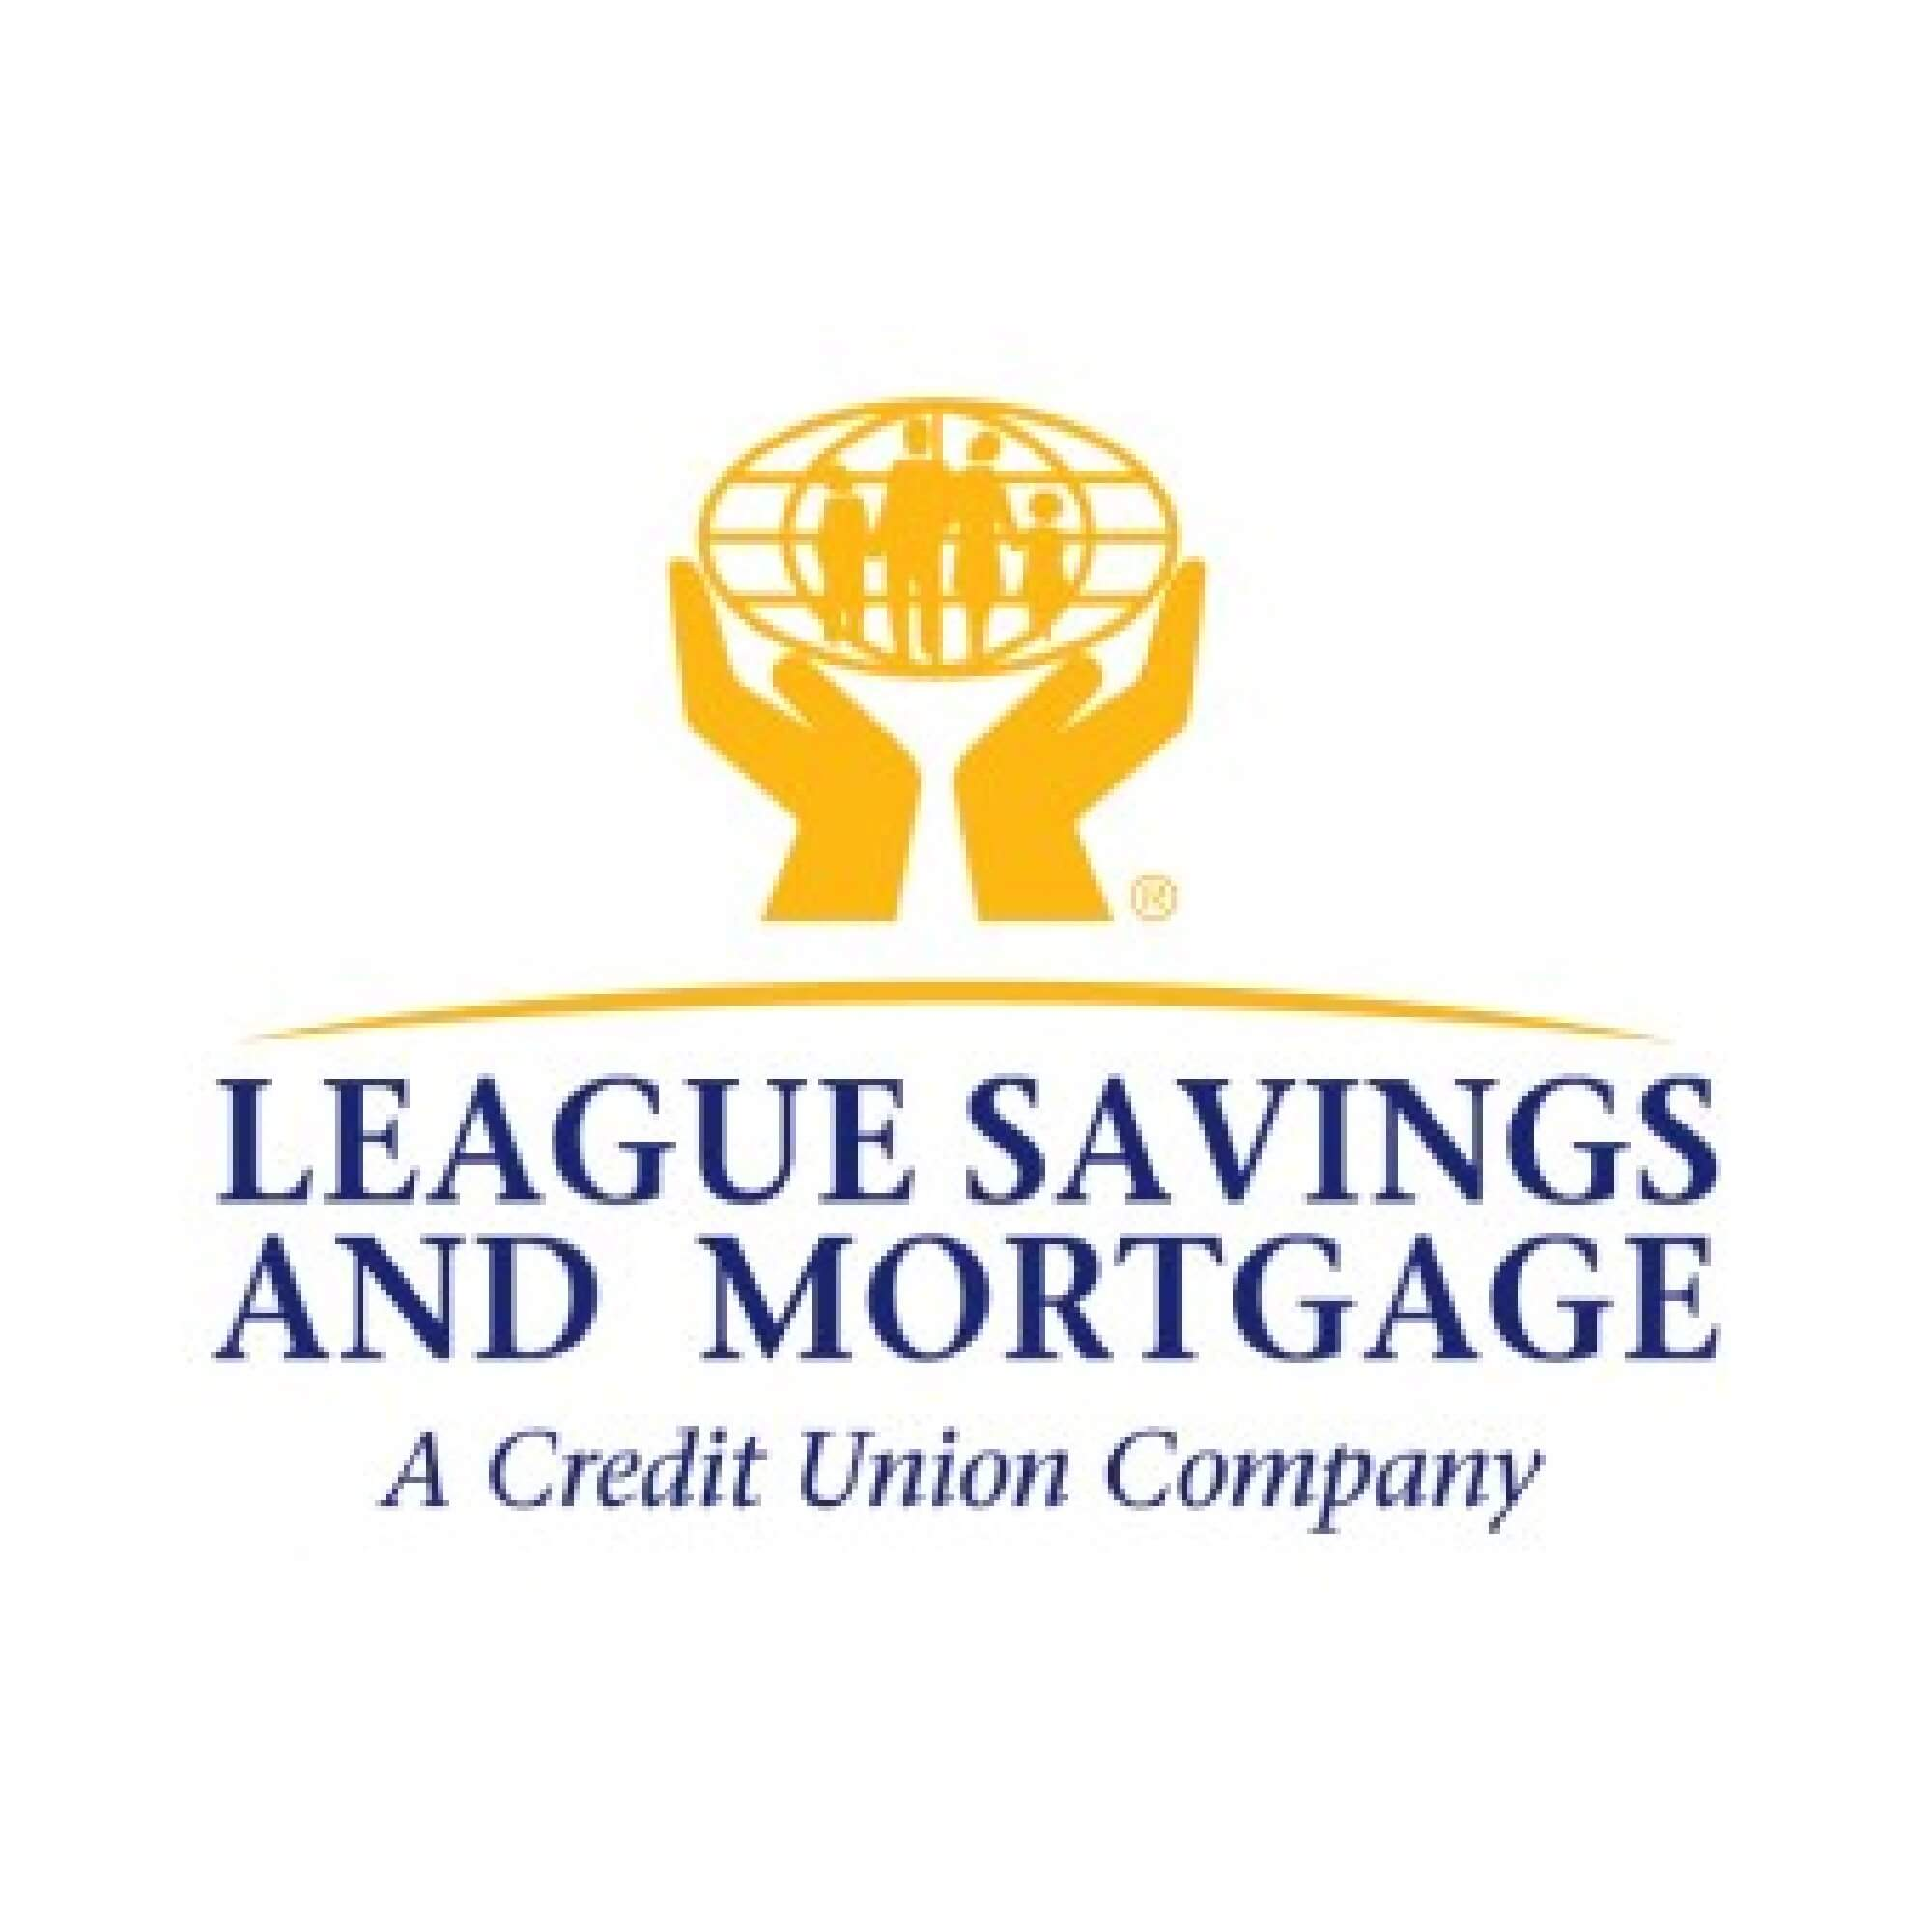 League Savings and Mortgages